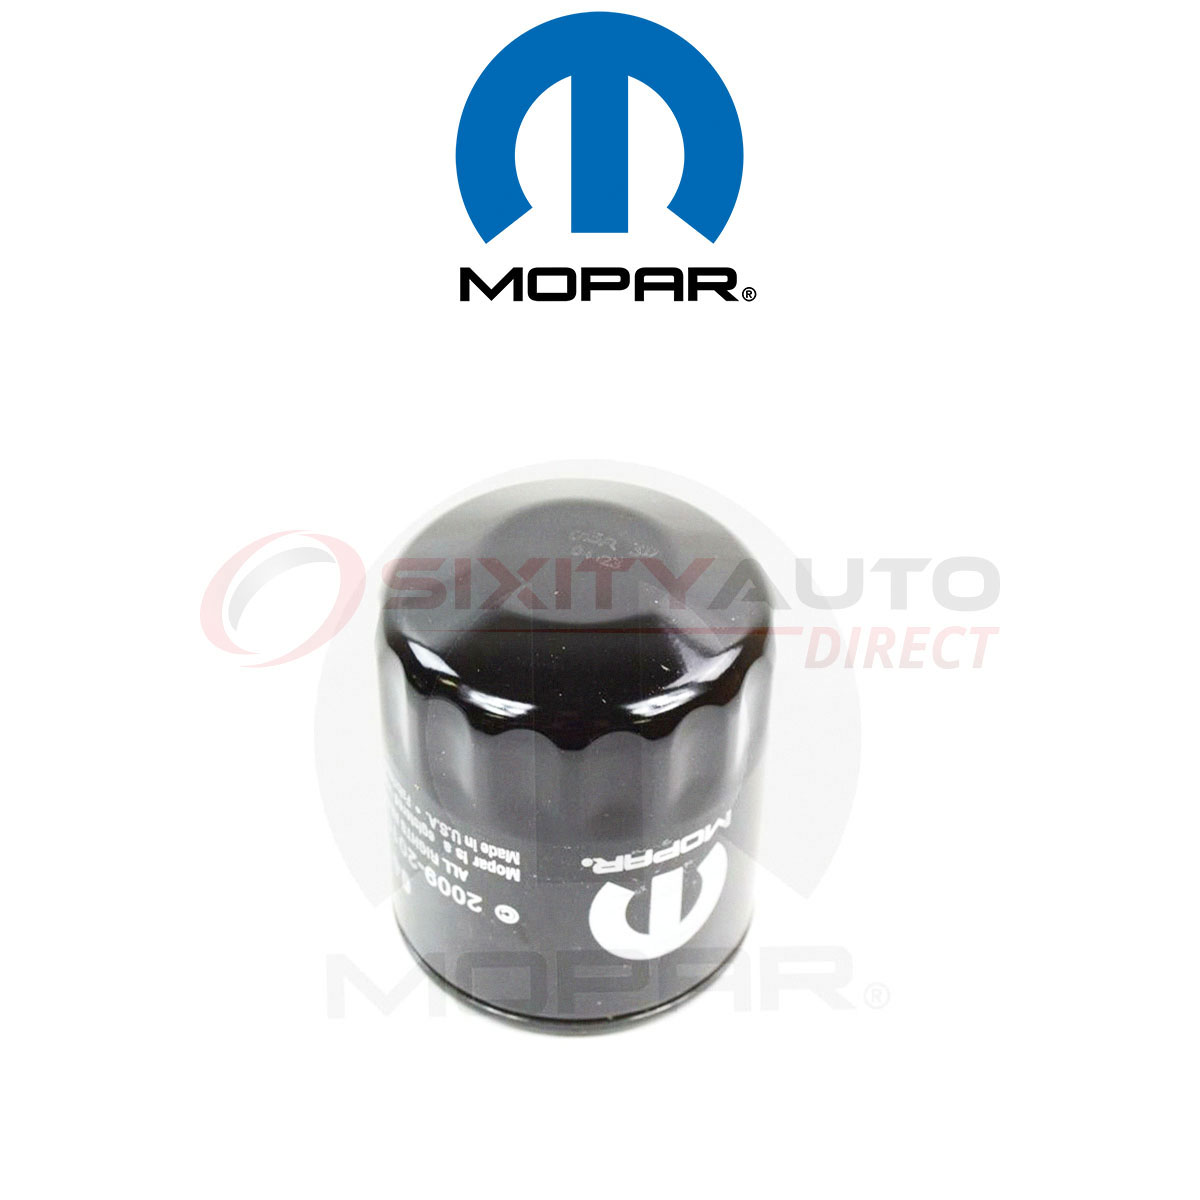 Mopar Engine Oil Filter For 1997-2007 Dodge Caravan 2 4l 3 3l L4 V6